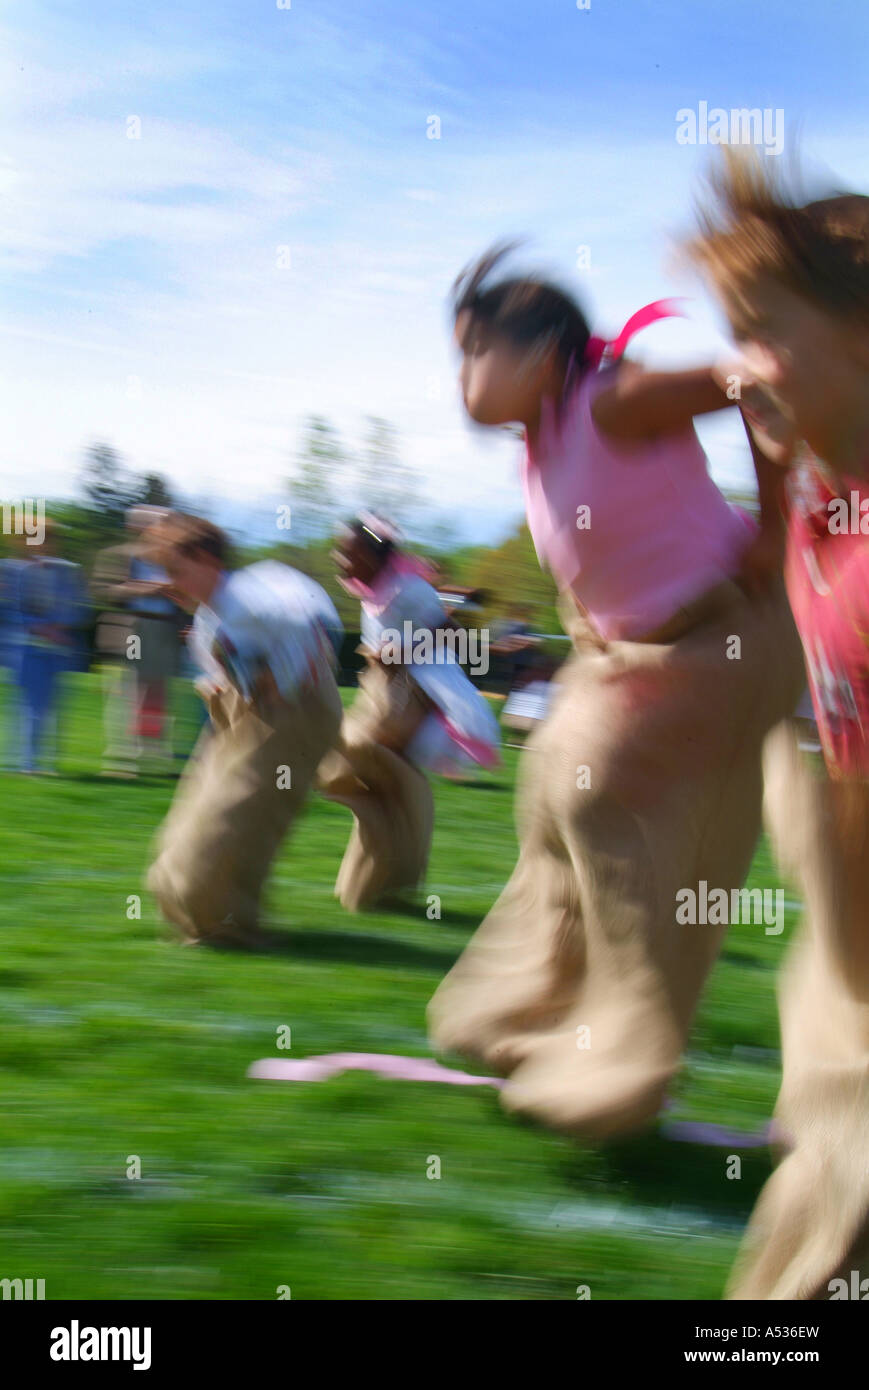 Elementary School Spring Field Day sack race - Stock Image